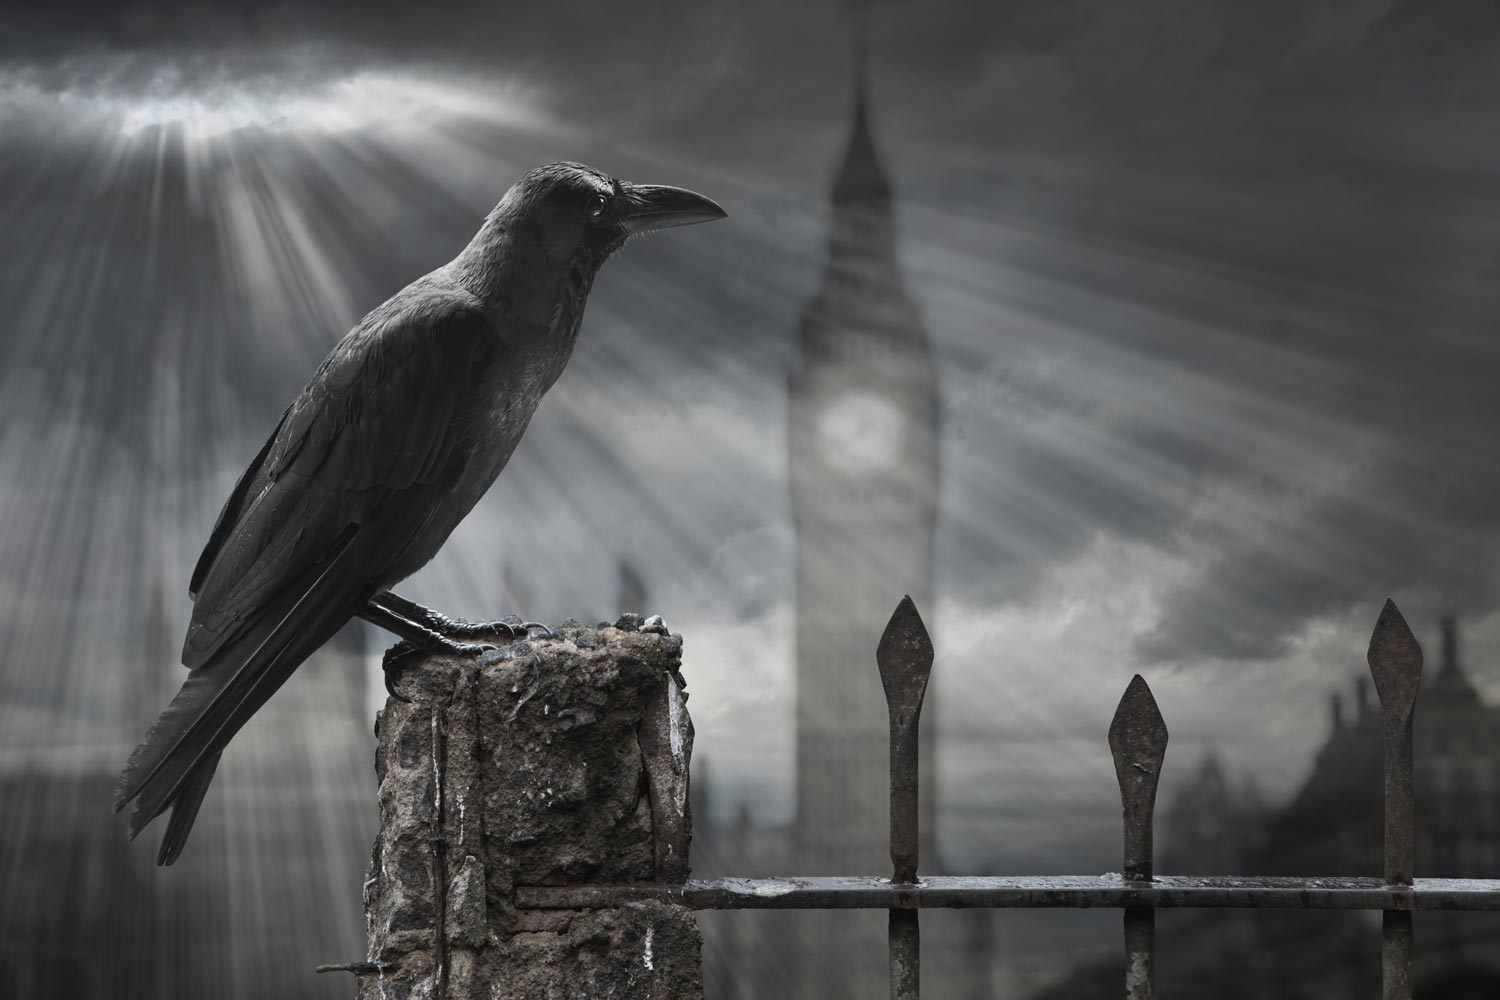 Crow in London with stormy